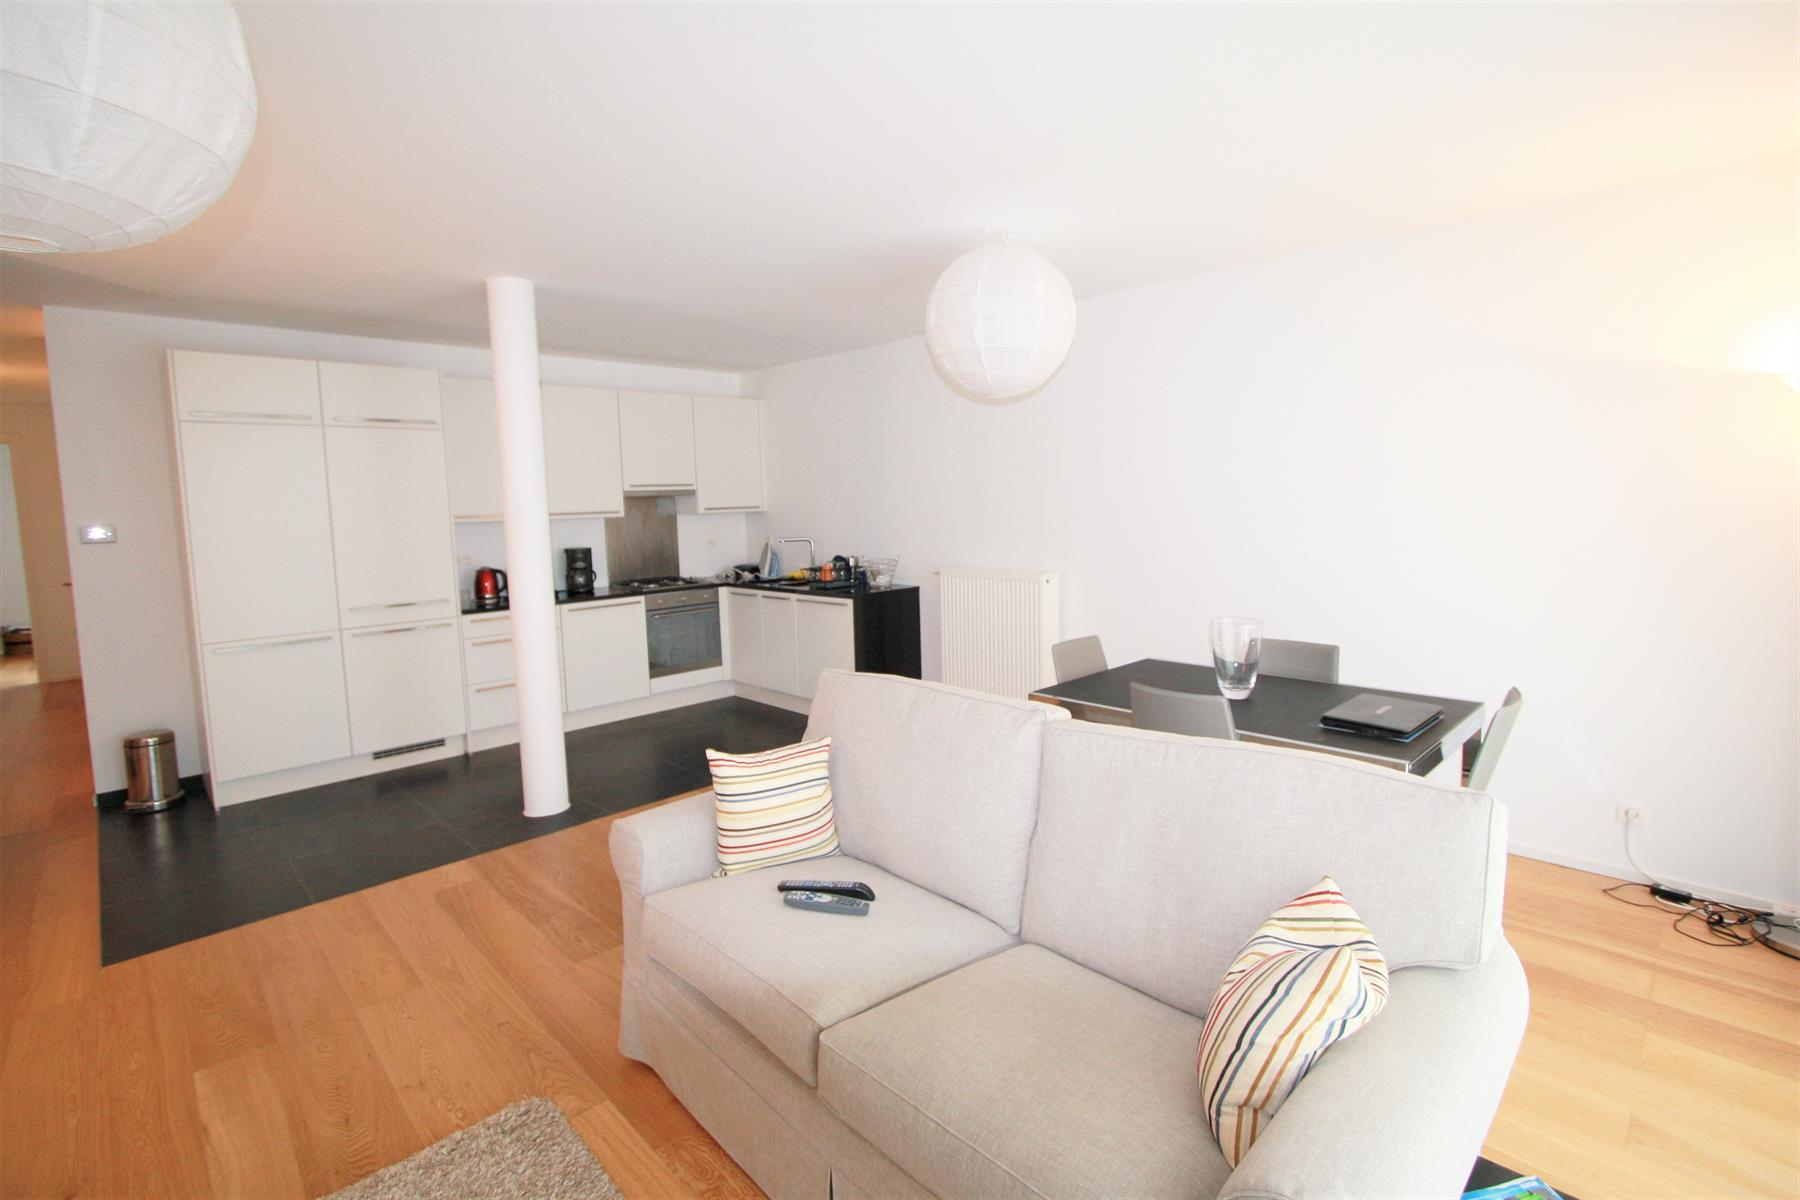 Appartement - Uccle - #4286290-3